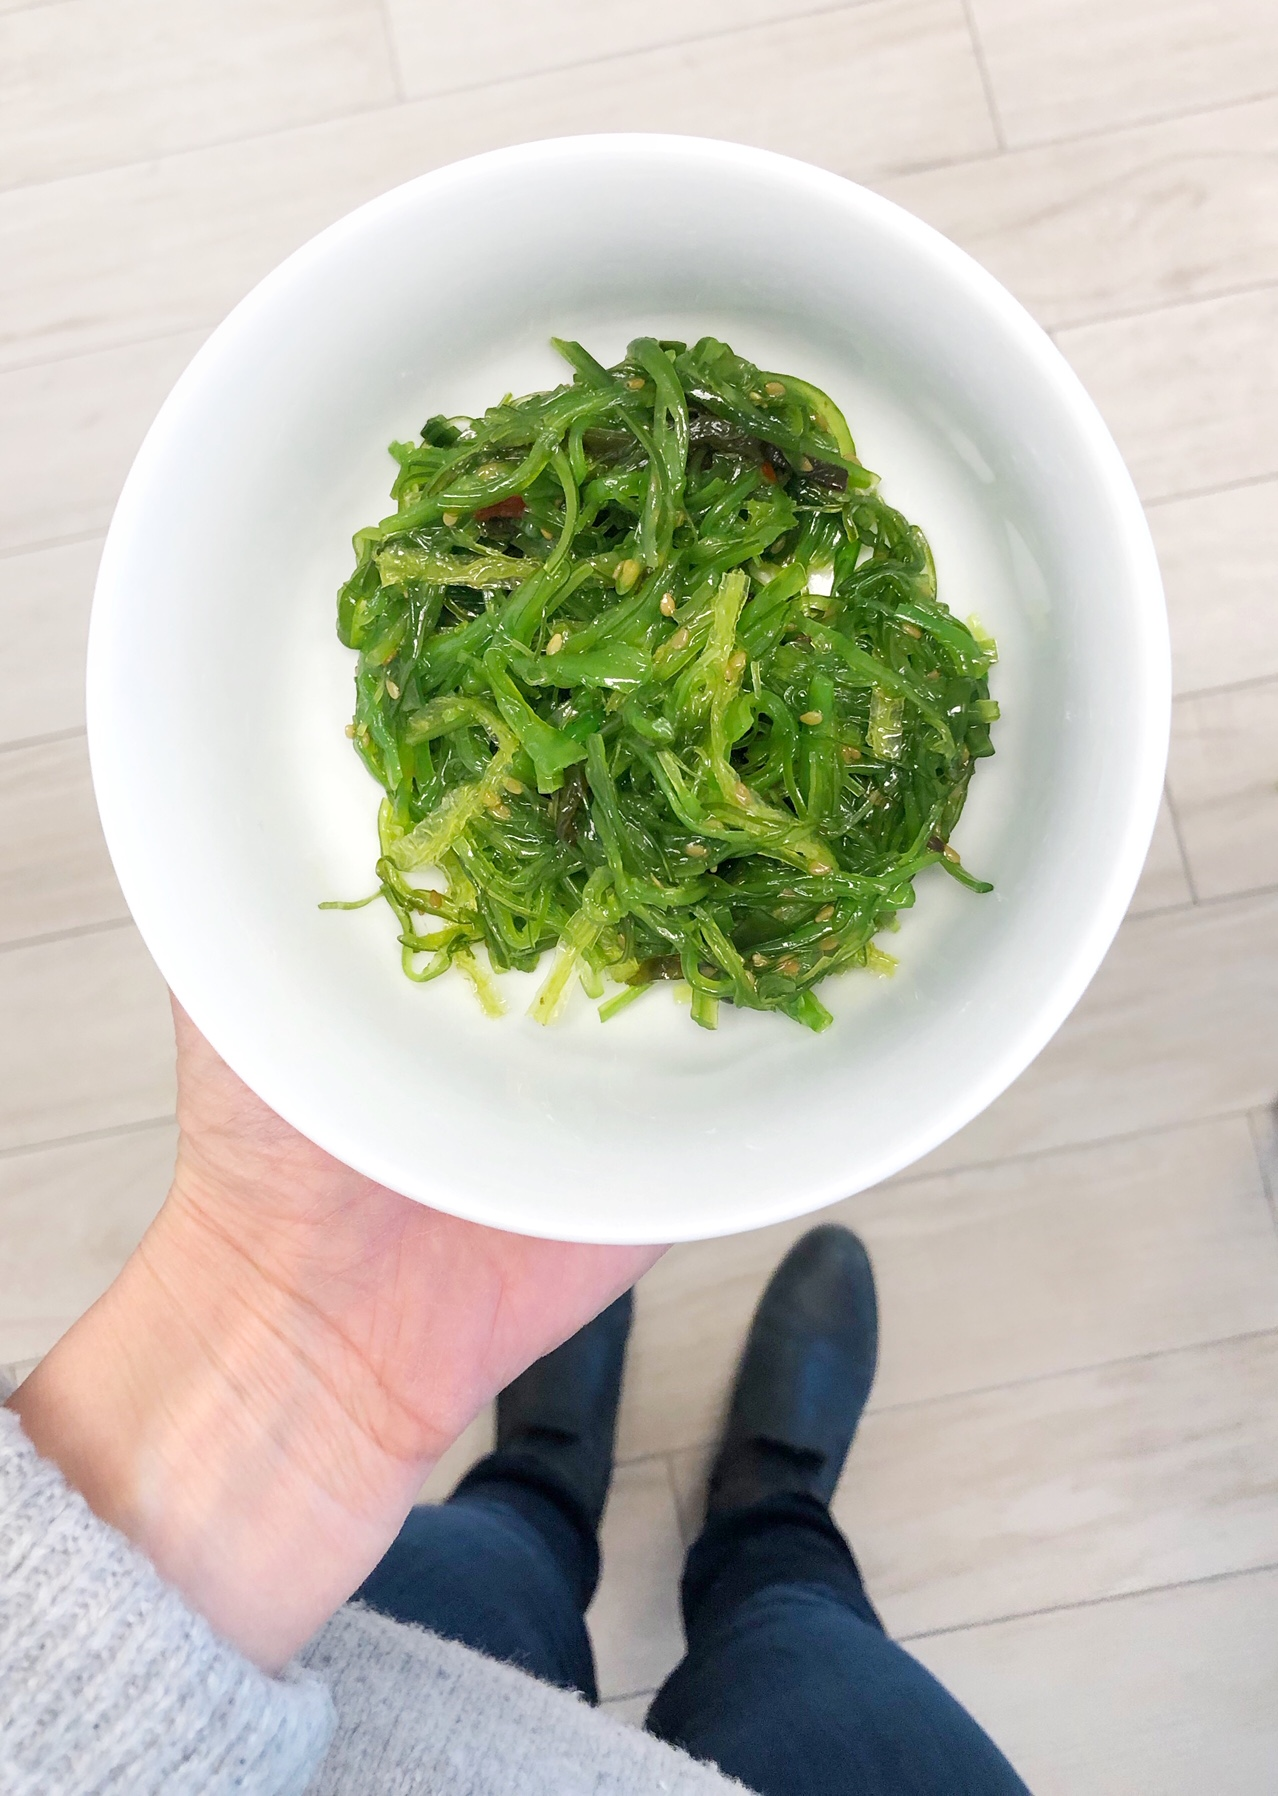 Person holding bowl of seaweed